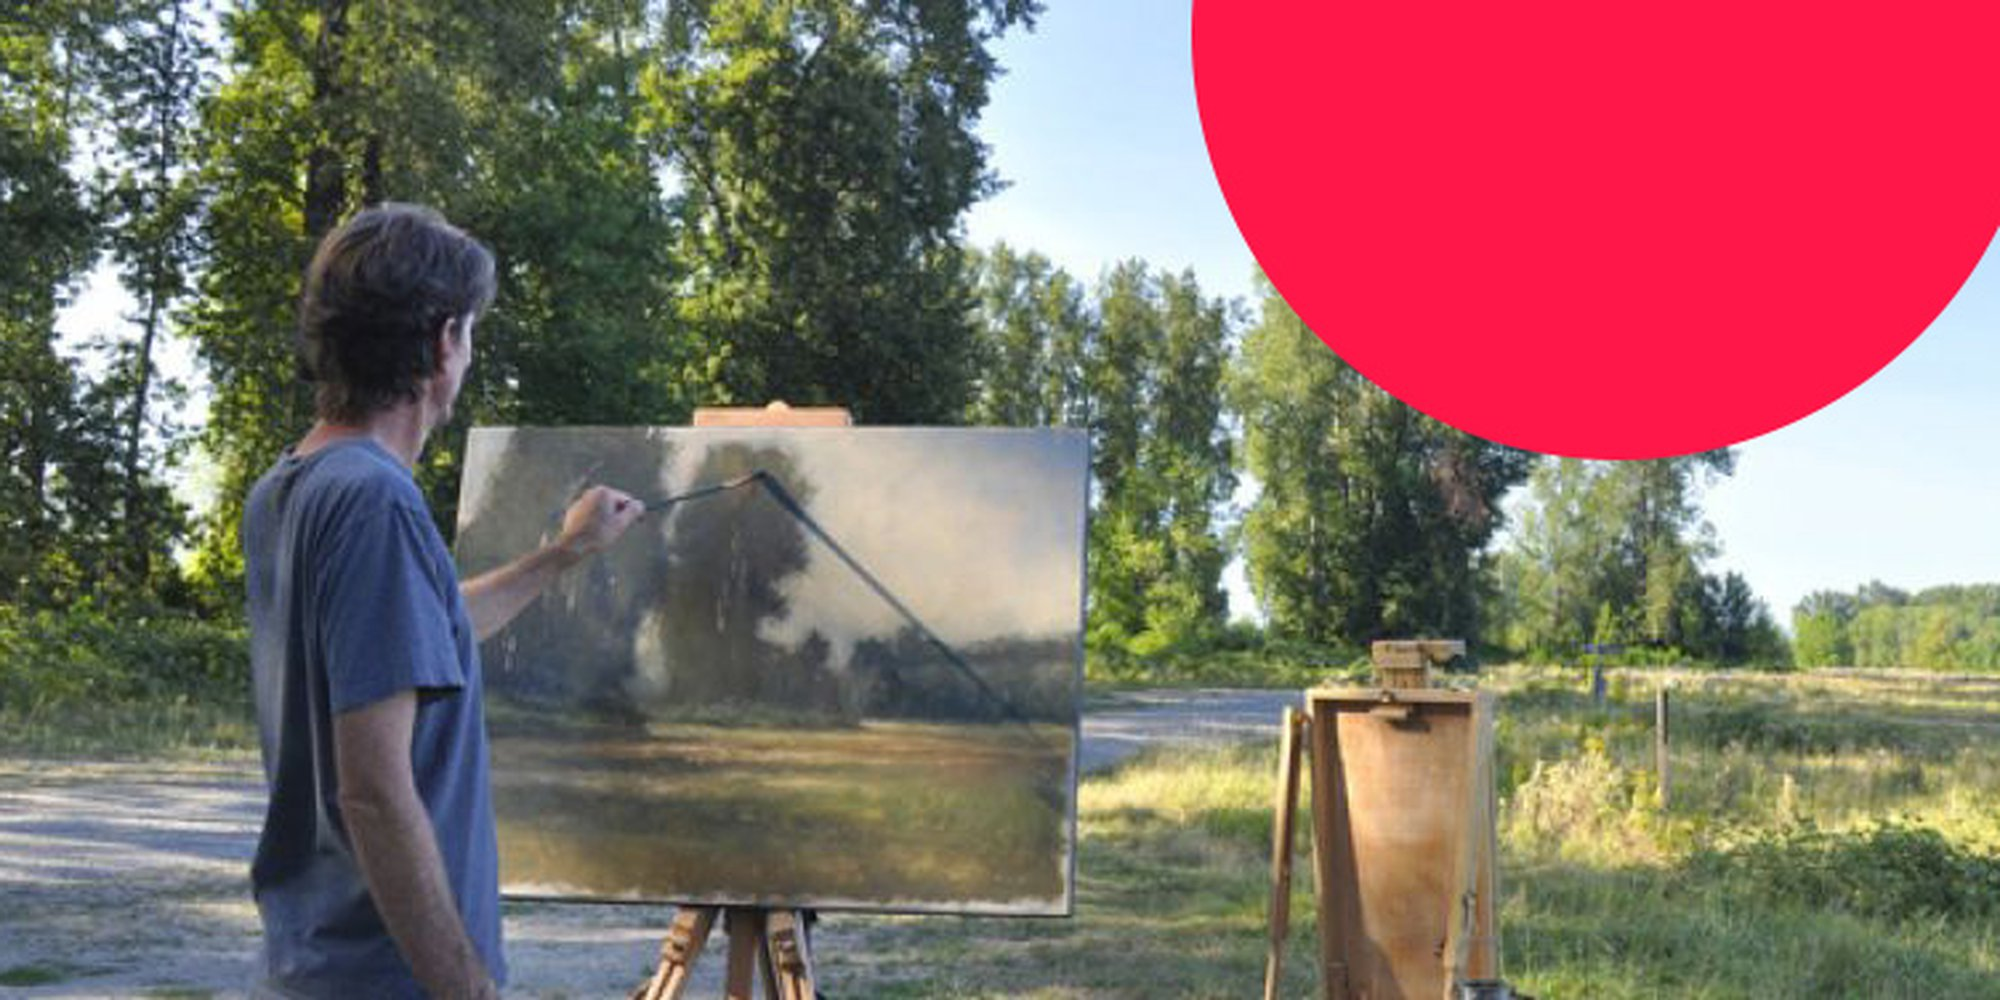 Portland artist Don Bishop on painting plein air, romanticism and using Artfinder to connect with art lovers across the world.